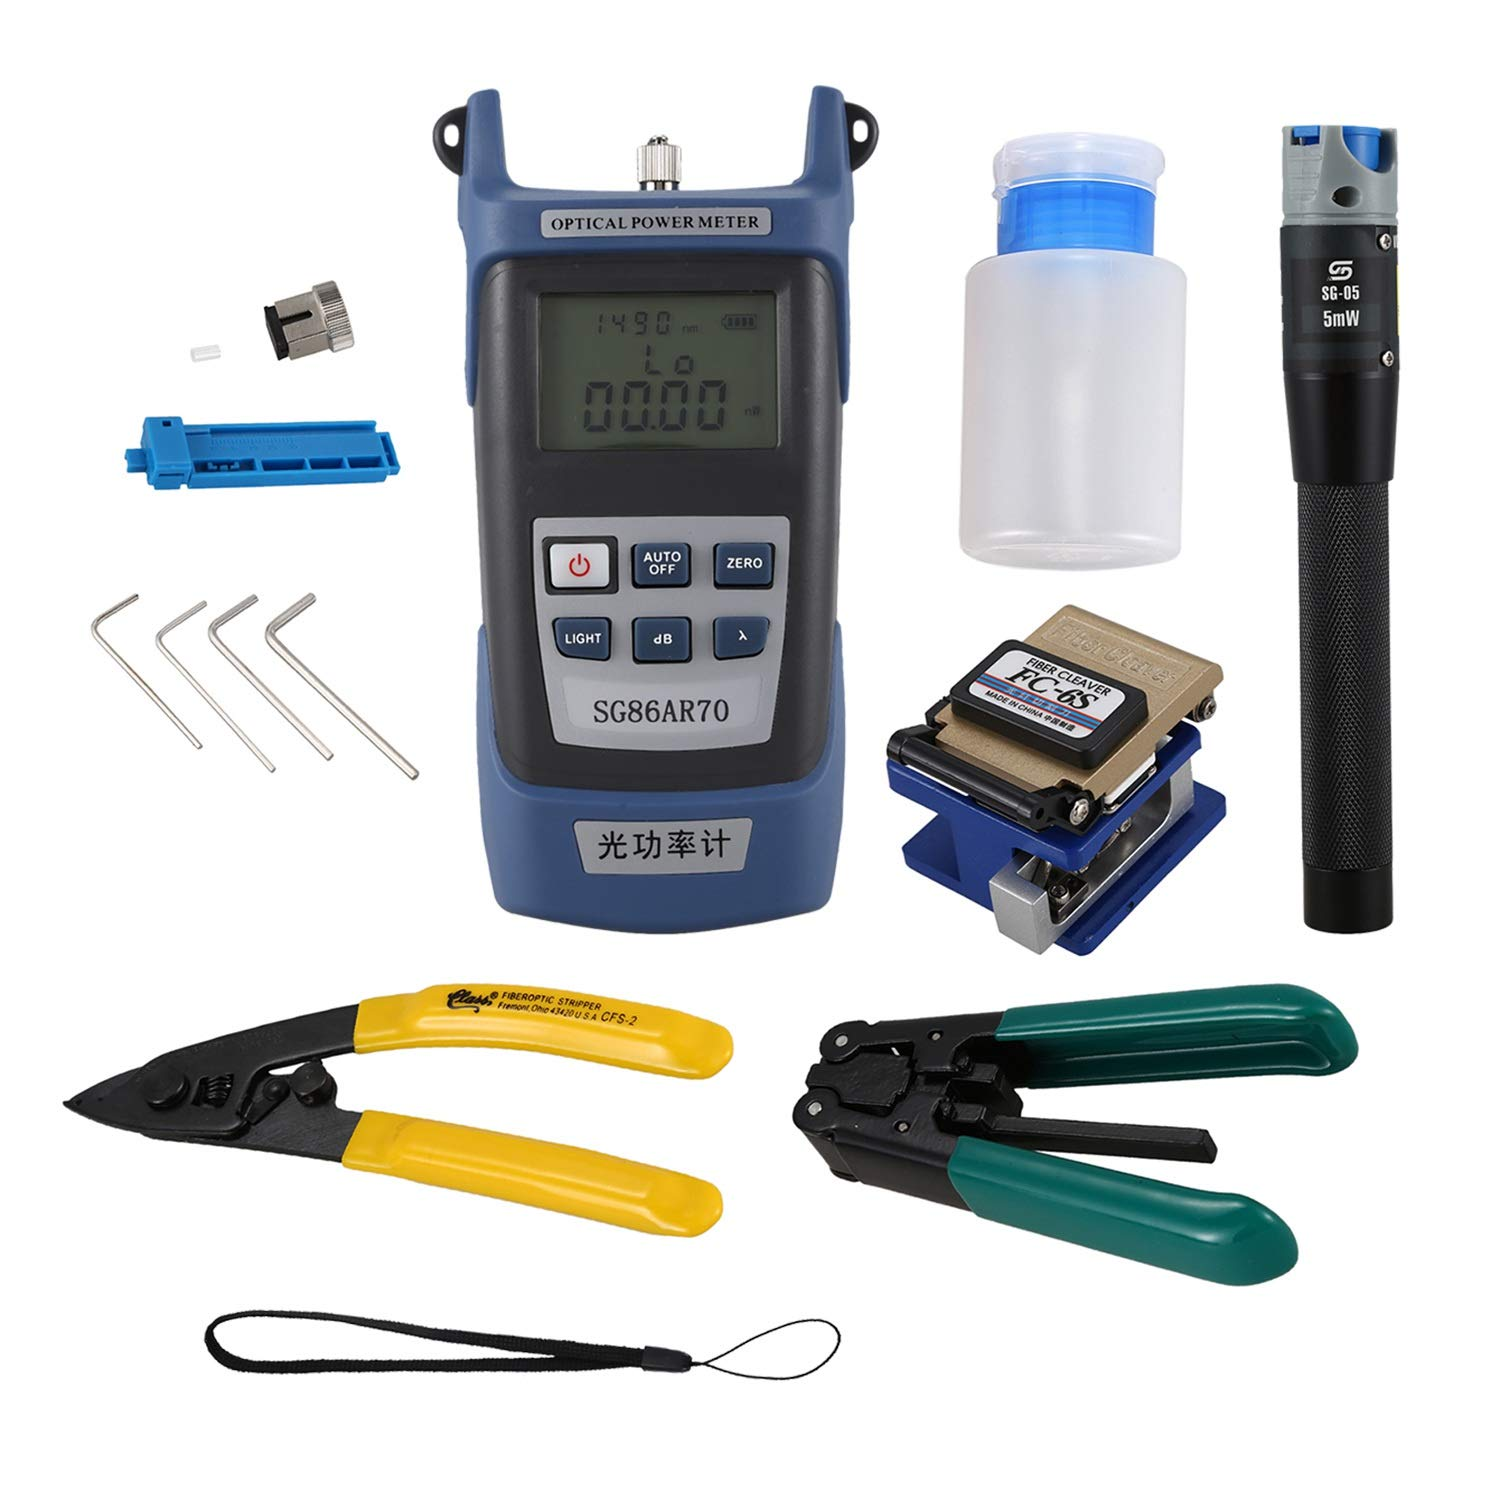 Semoic for Fc-6S Fiber Optic Ftth Tool Kit Fiber and Aua-60S Fiber Cleaver Optical Power Meter3-5Km Visual Finder Locator Wire Stripper by Semoic